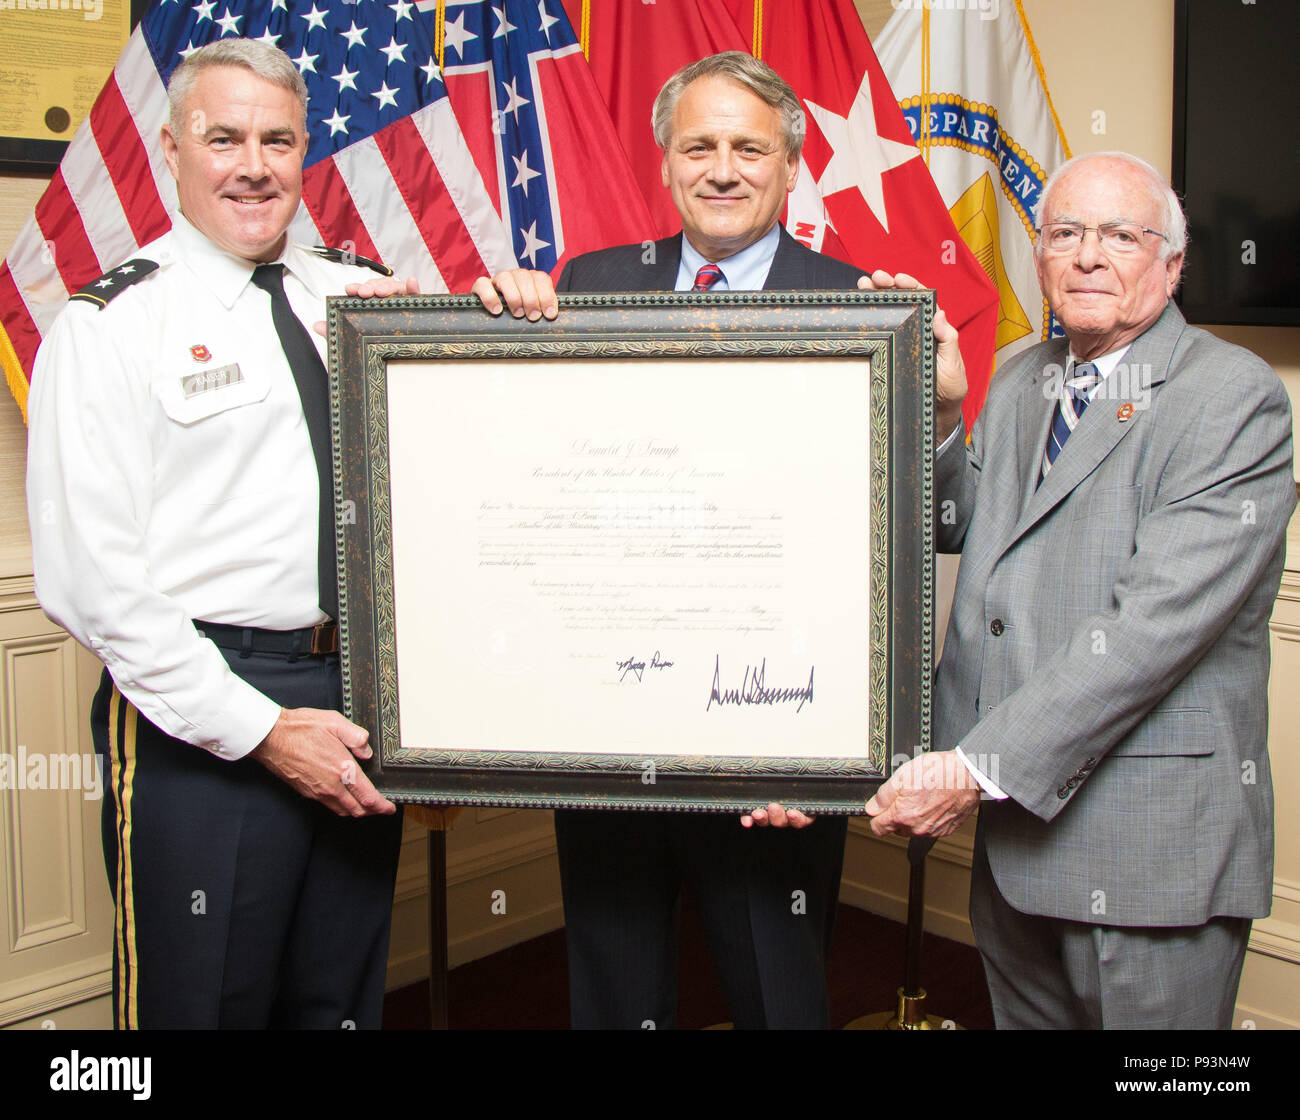 Mississippi River Commission President Maj. Gen. Richard Kaiser and MRC member Sam Angel present an appointment letter to James A. Reeder at the MRC headquarters in Vicksburg, Miss., July 11, 2018. President Donald Trump appointed Reeder as a member of the Mississippi River Commission May 17, 2018. Commission appointments are nominated by the President of the United States and vetted by the U.S. Senate. (USACE photo by Jared Eastman) - Stock Image